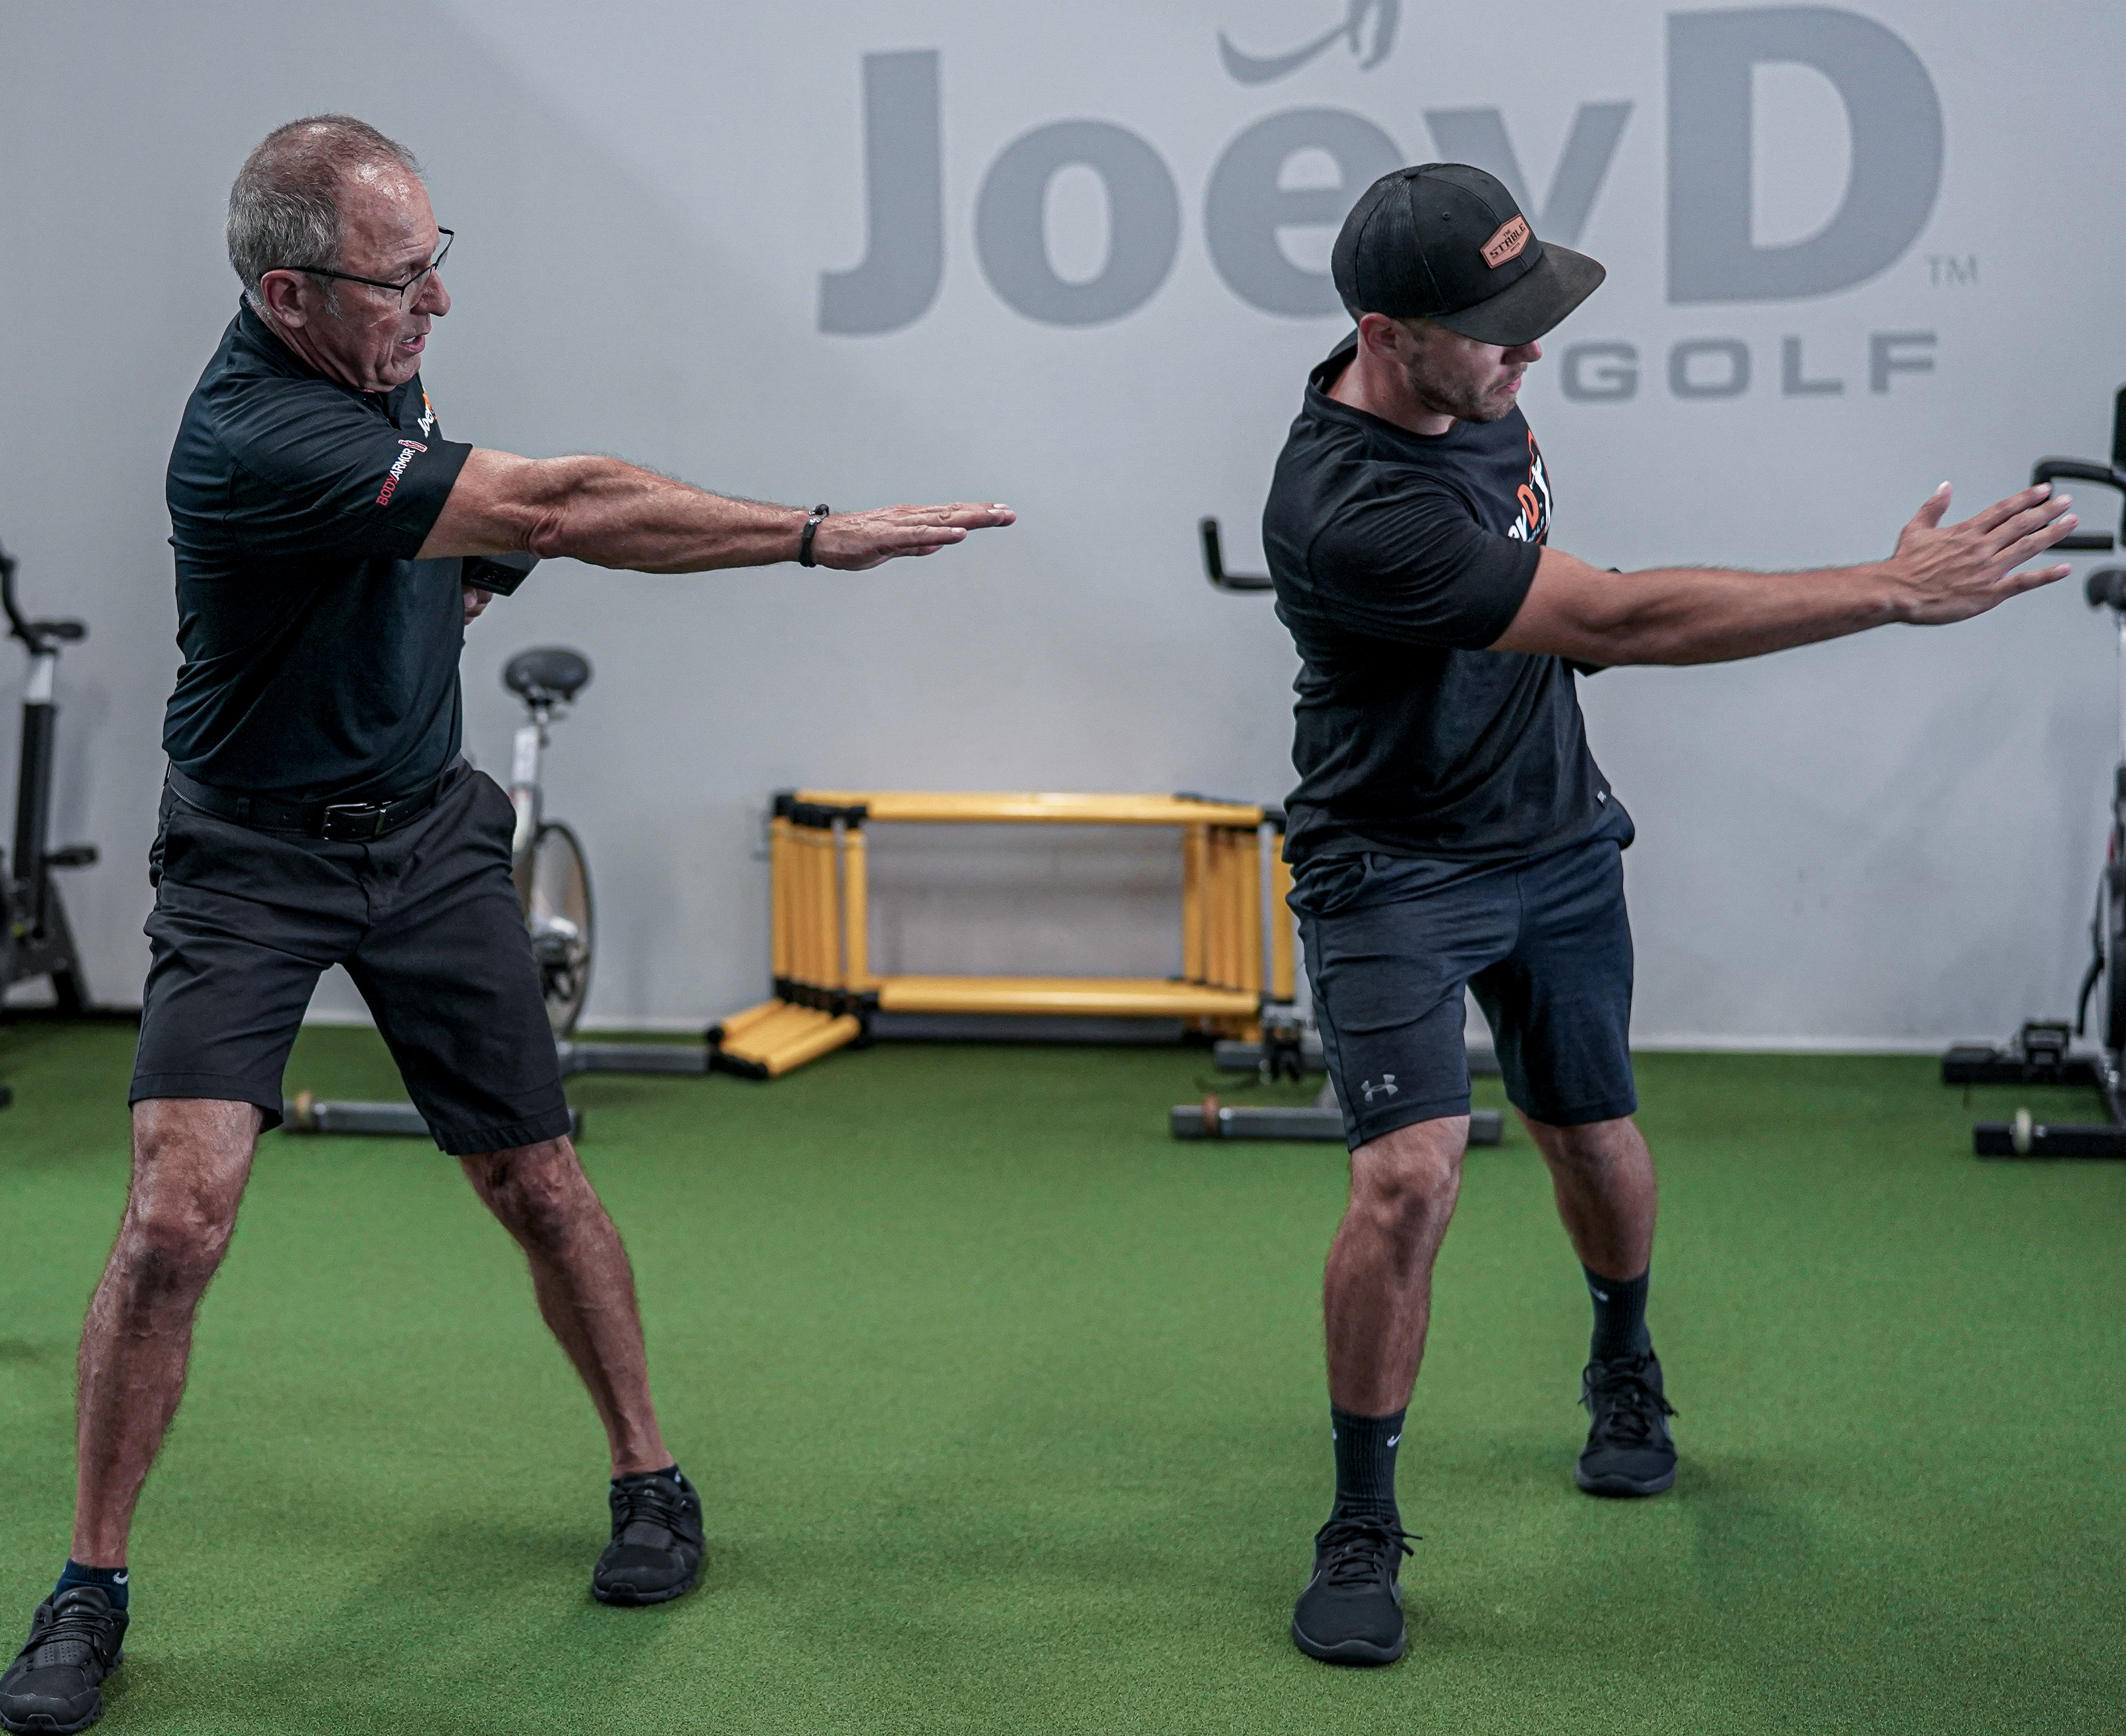 golf assessment at Joey D Golf Training Center